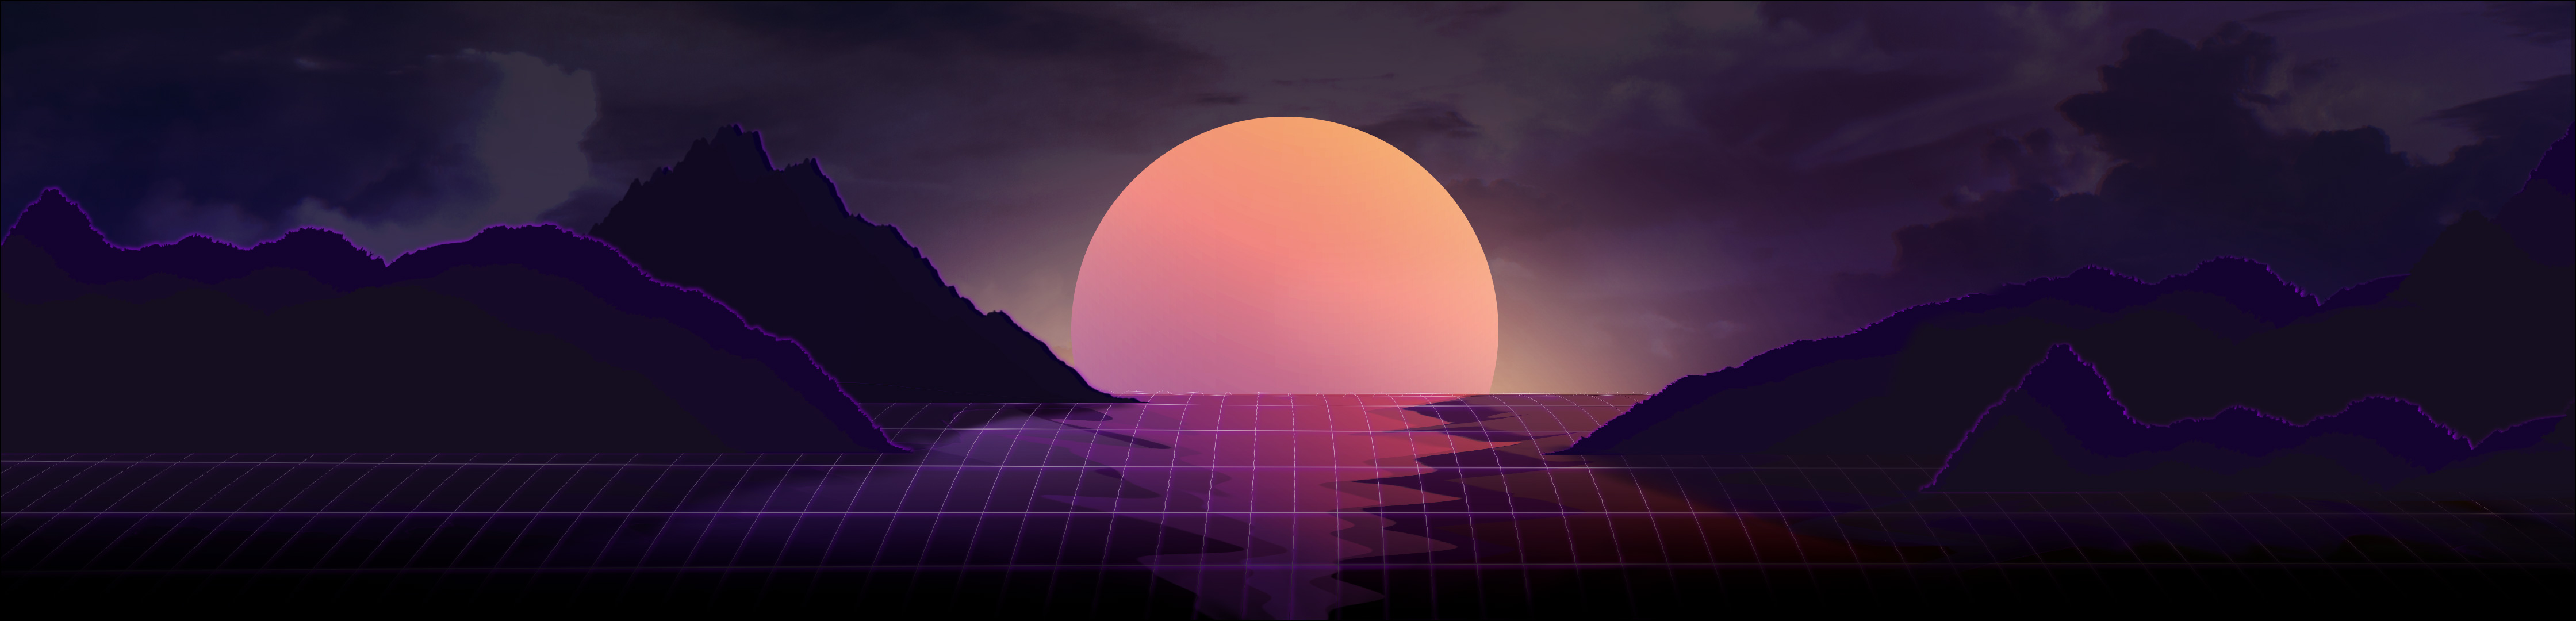 Dual Monitor Wallpaper Vaporwave Posted By Zoey Simpson